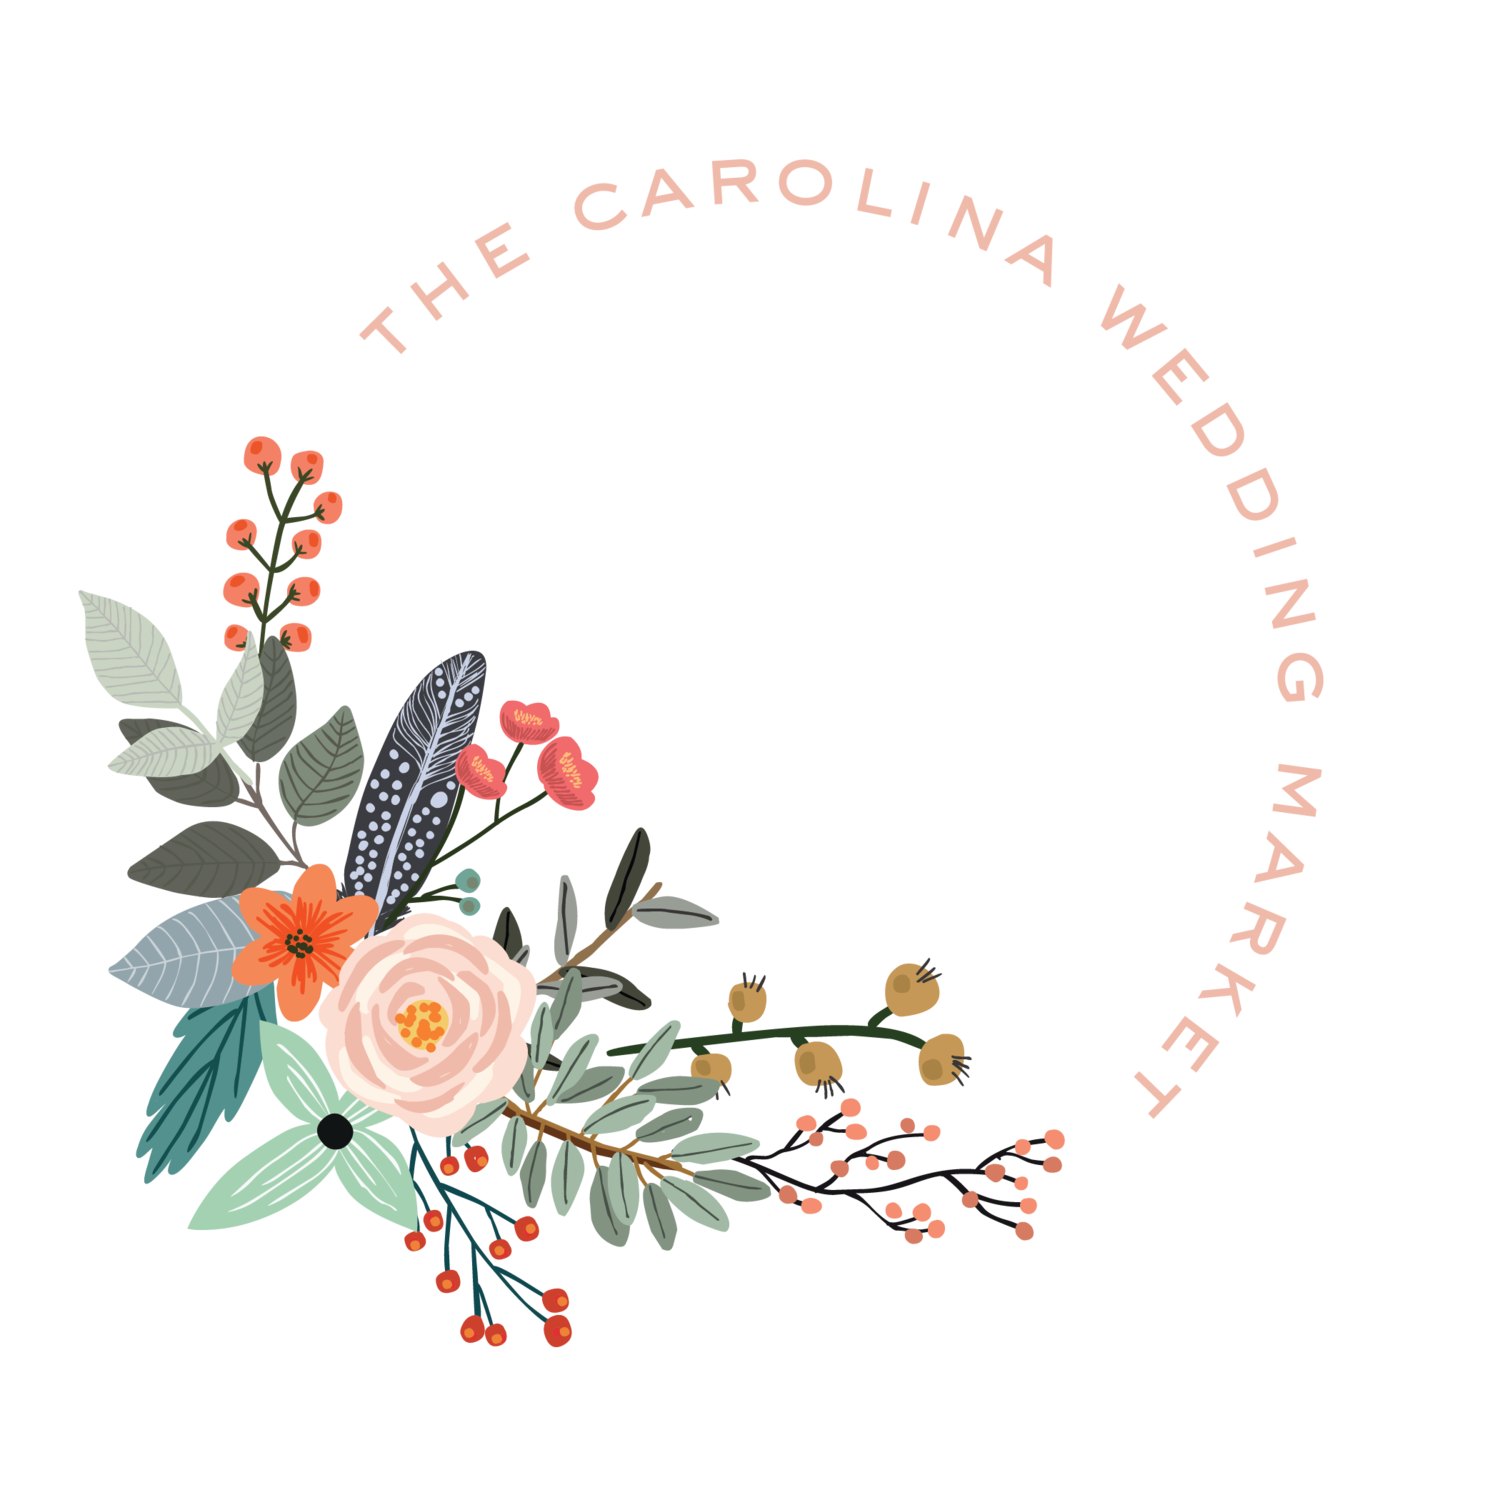 Carolina+Wedding+Market-01